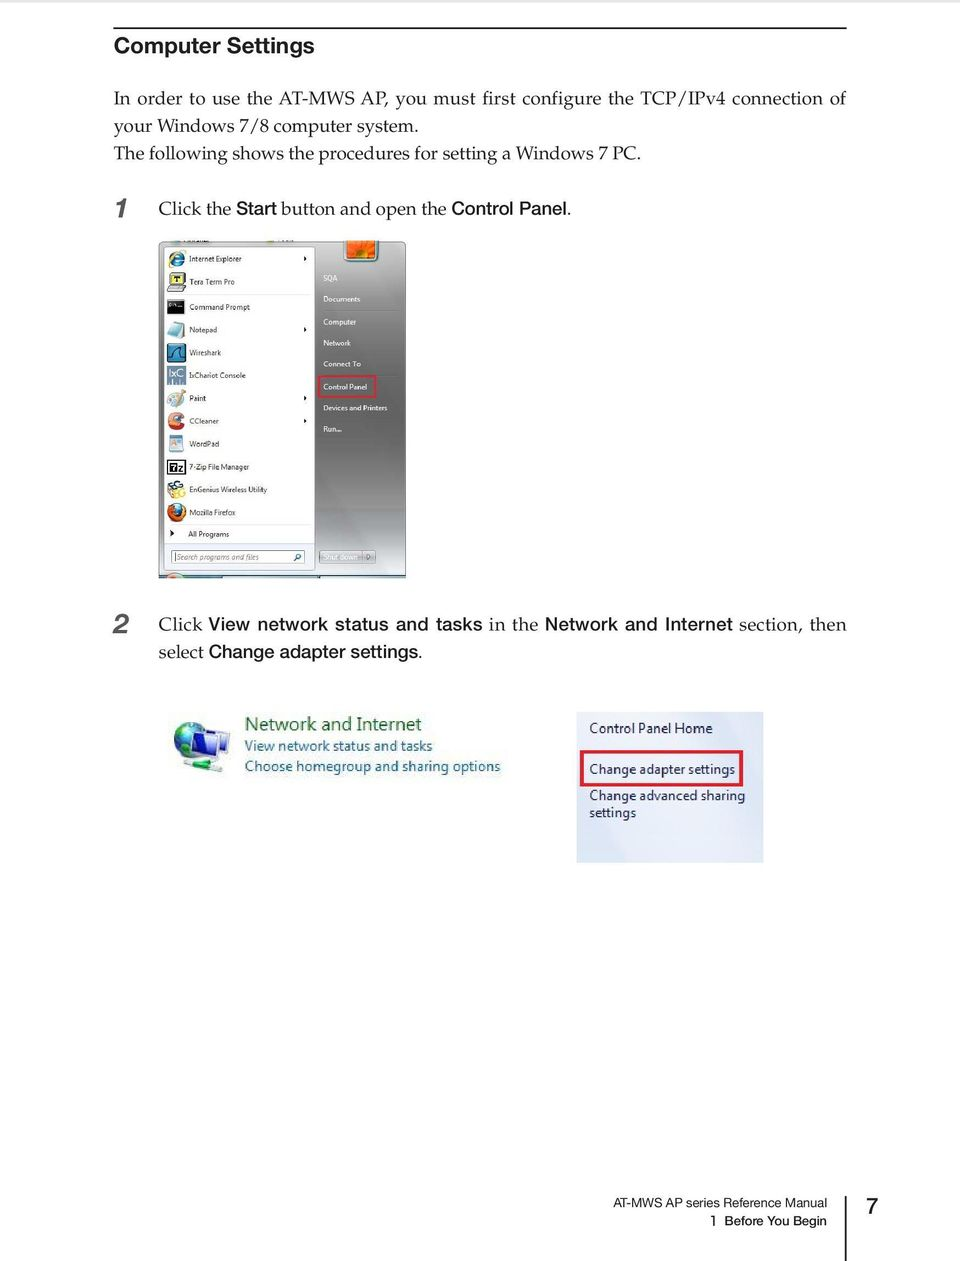 The following shows the procedures for setting a Windows 7 PC.